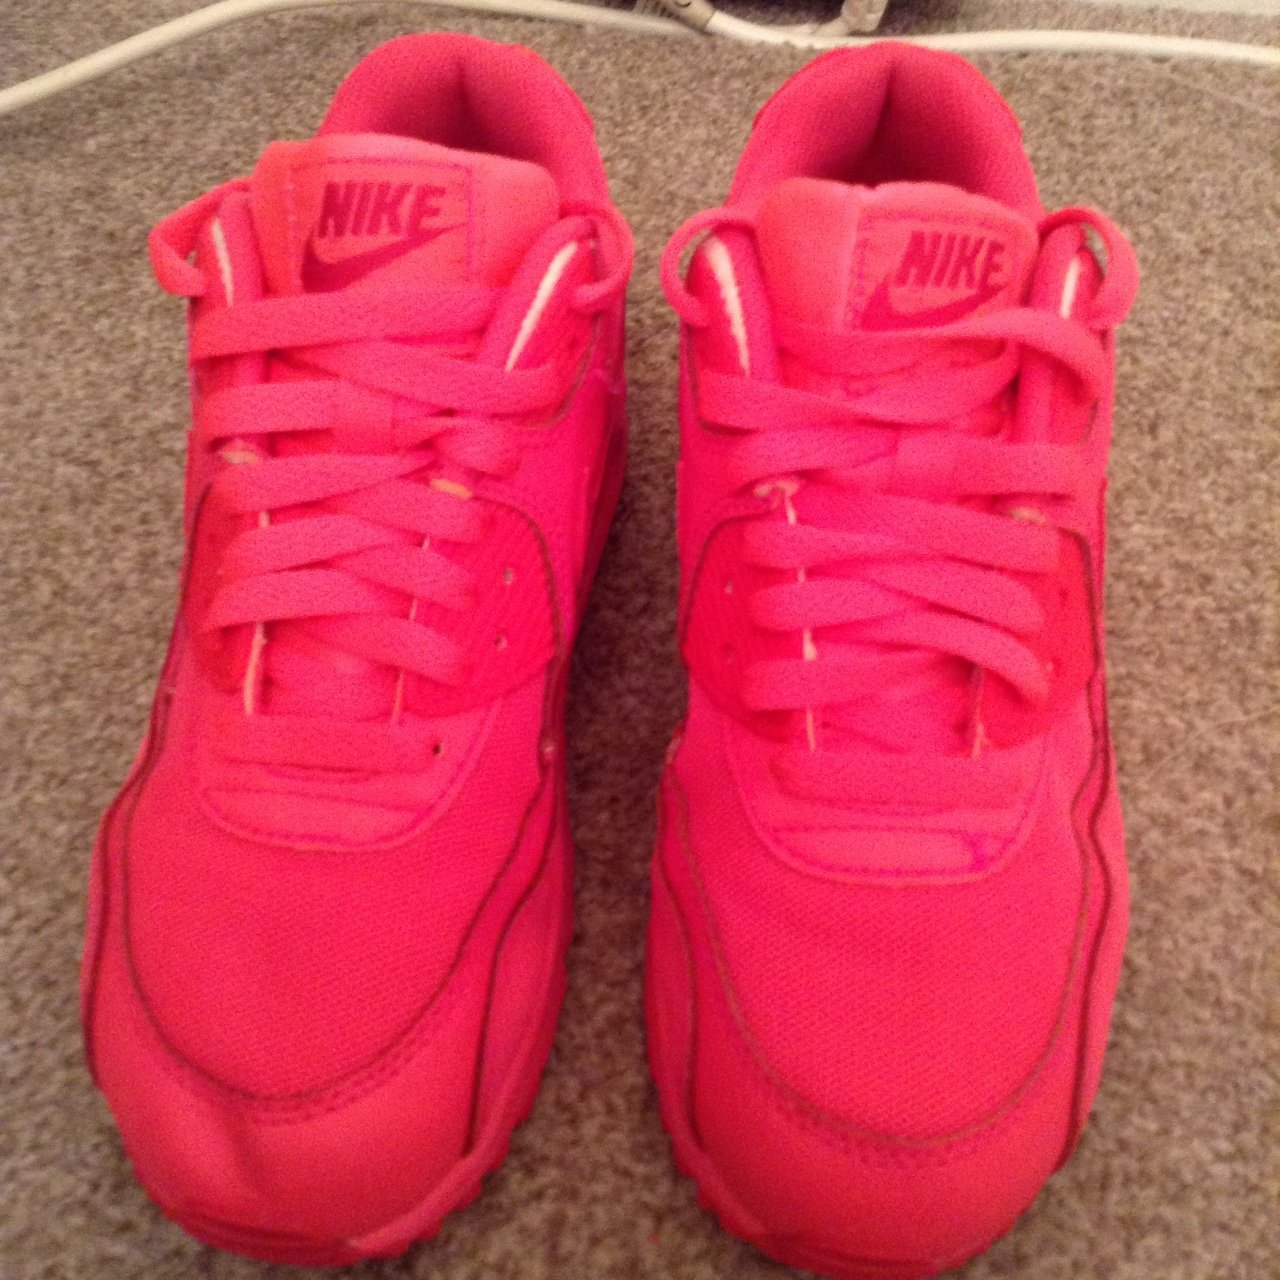 ladies Nike air max  pink nikes  limited edition. Bought in - Depop 35a98c3693